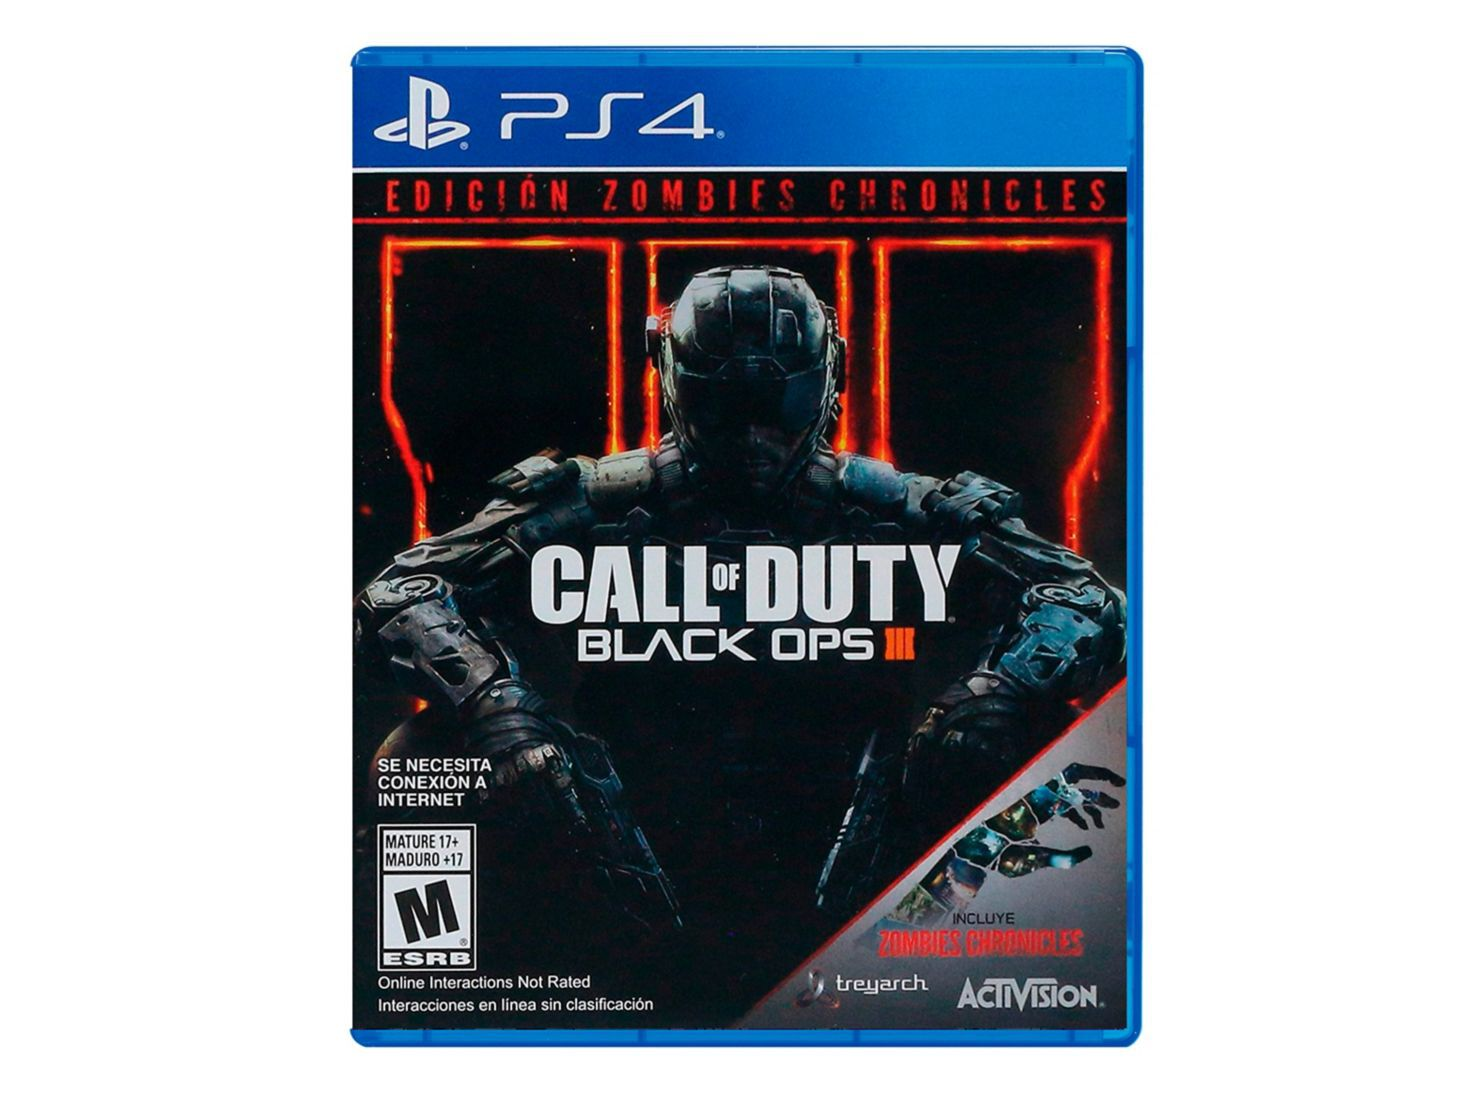 Juego Ps4 Call Of Duty Black Ops Iii Zombies Chronicles Juegos Ps4